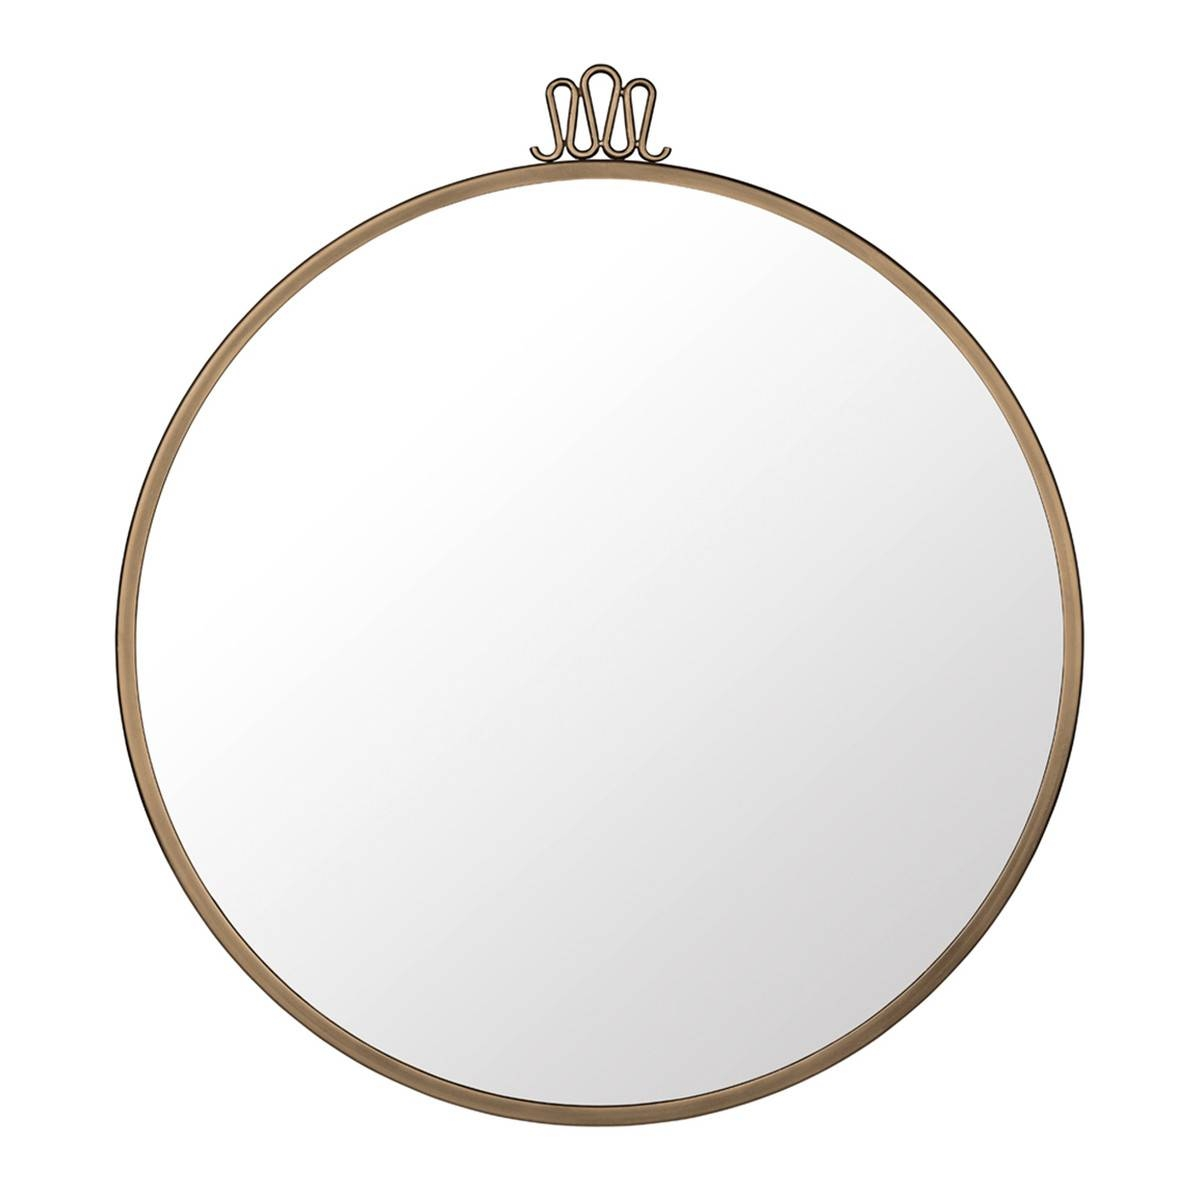 Randaccio Wall Mirrorgubi | Connox with regard to Vintage Wall Mirrors (Image 17 of 25)